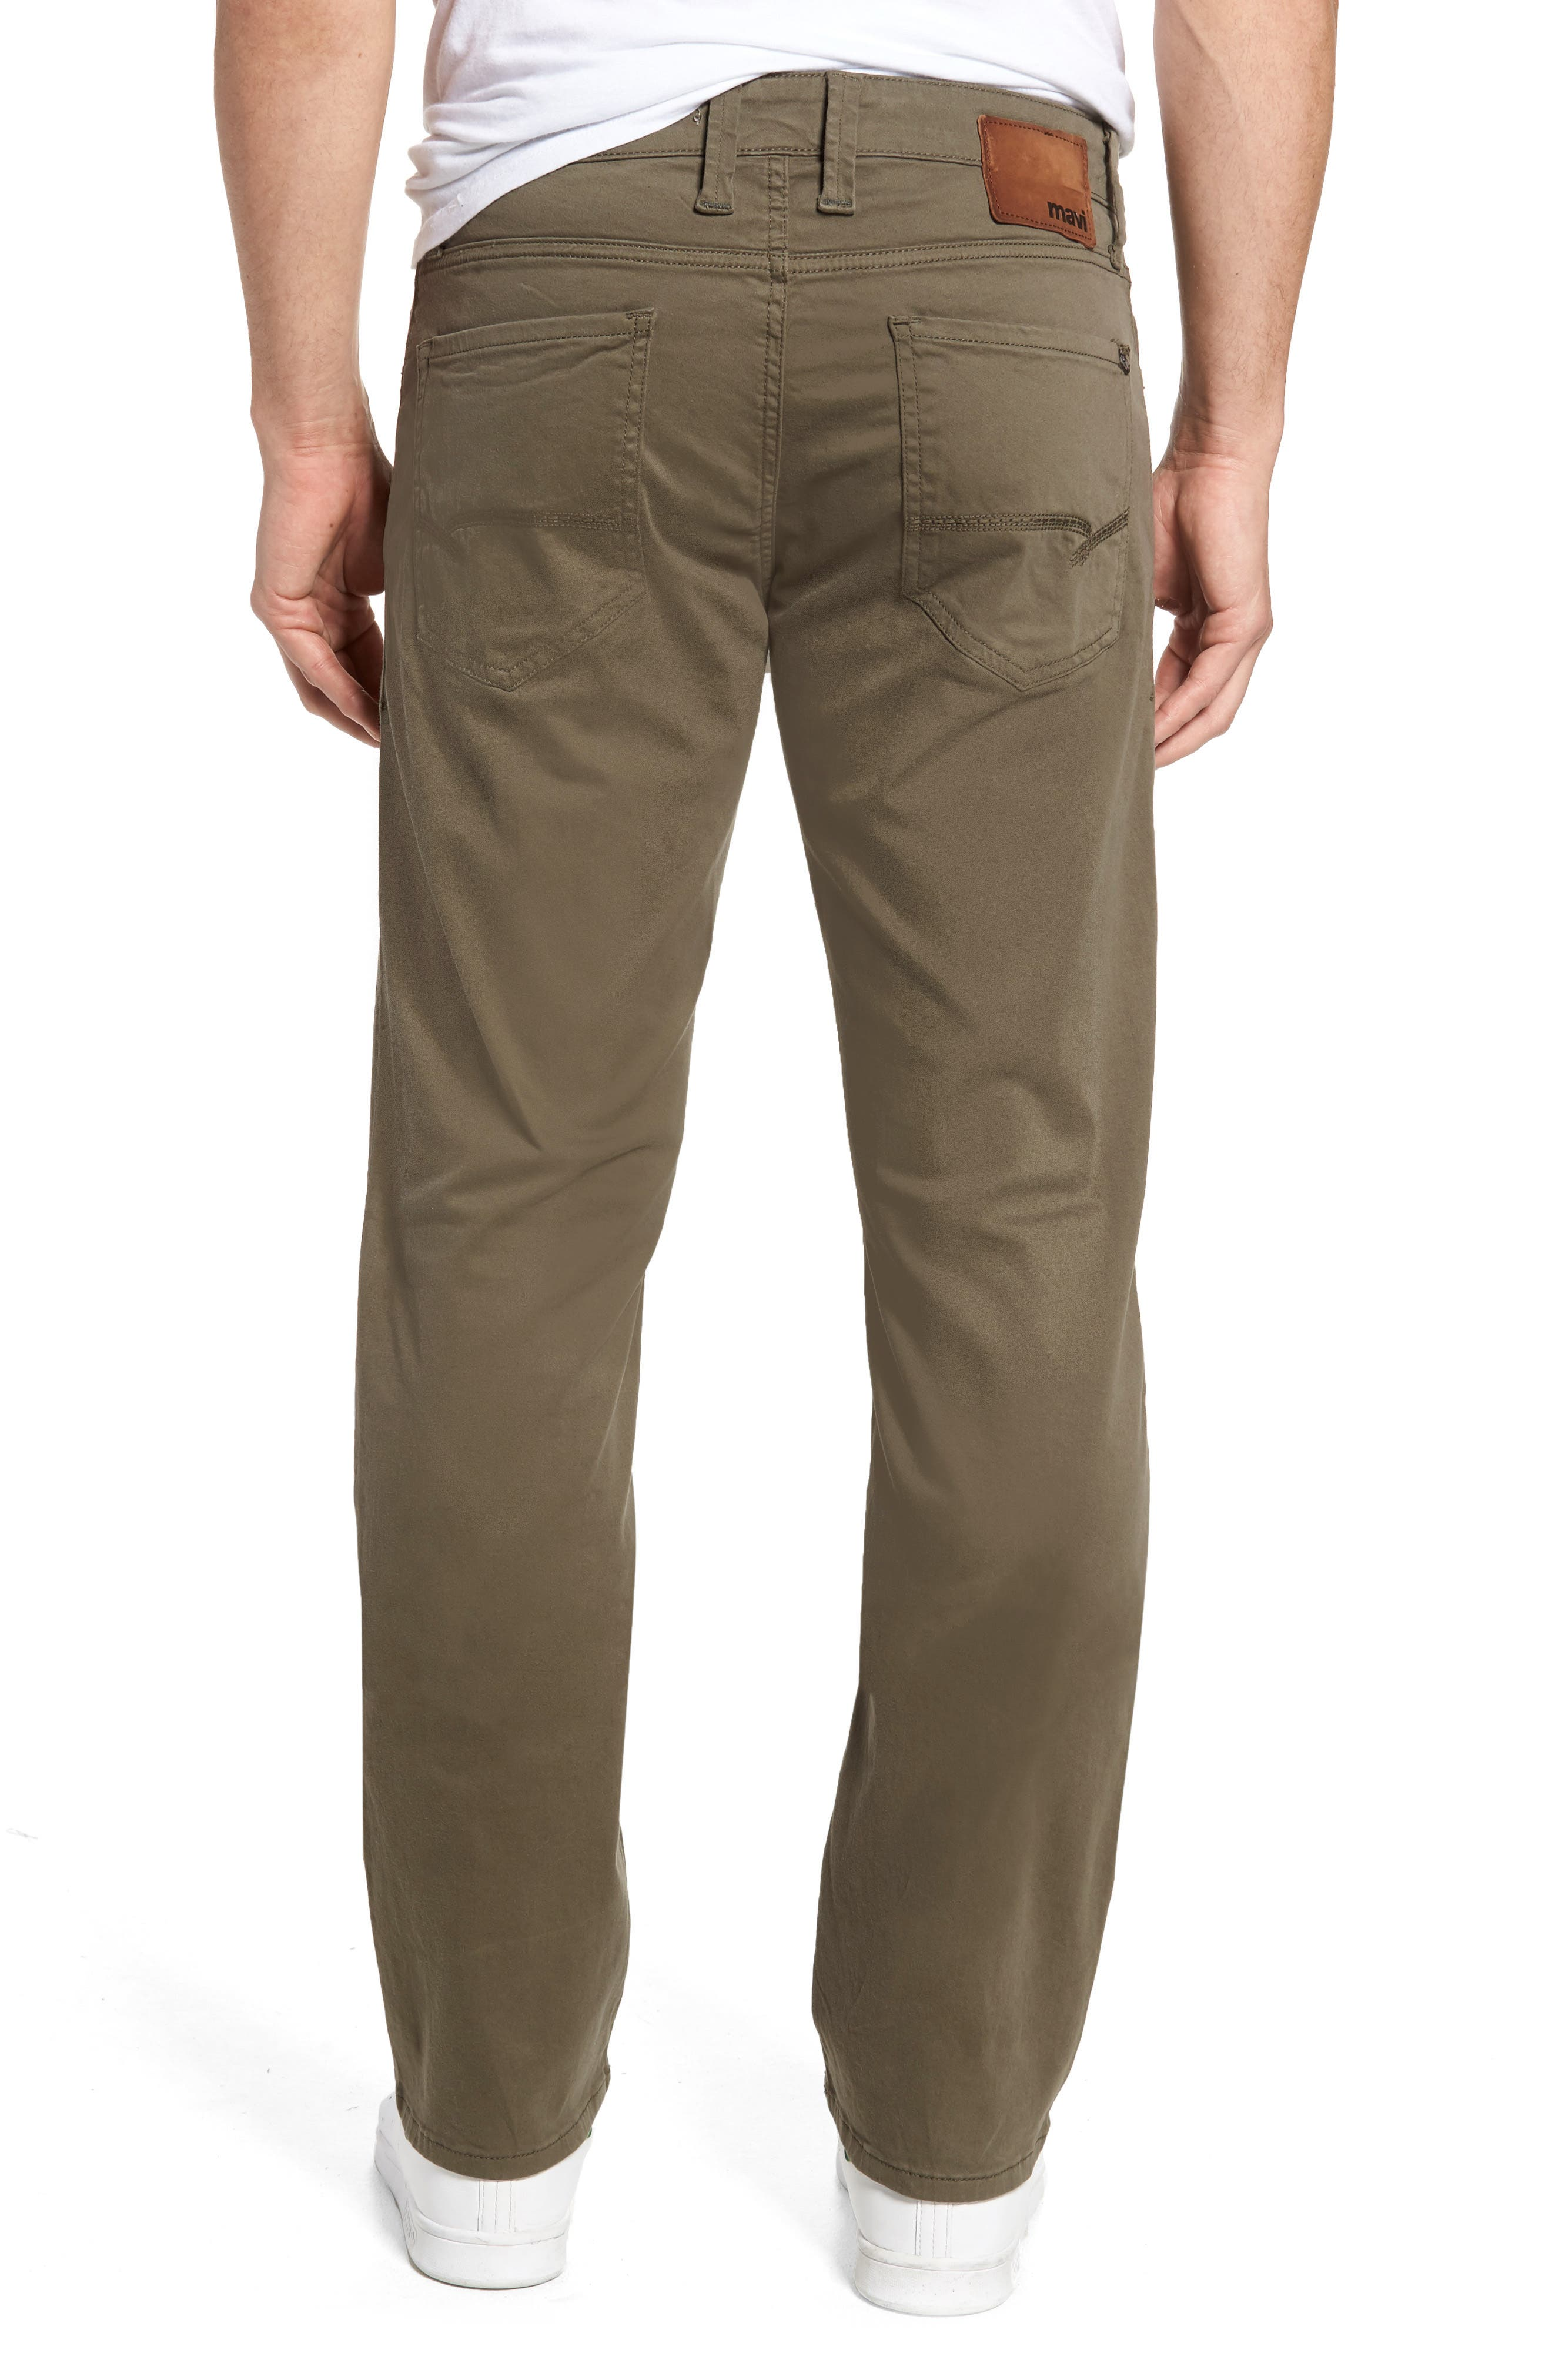 Zach Straight Fit Twill Pants,                             Alternate thumbnail 2, color,                             DUSTY OLIVE TWILL